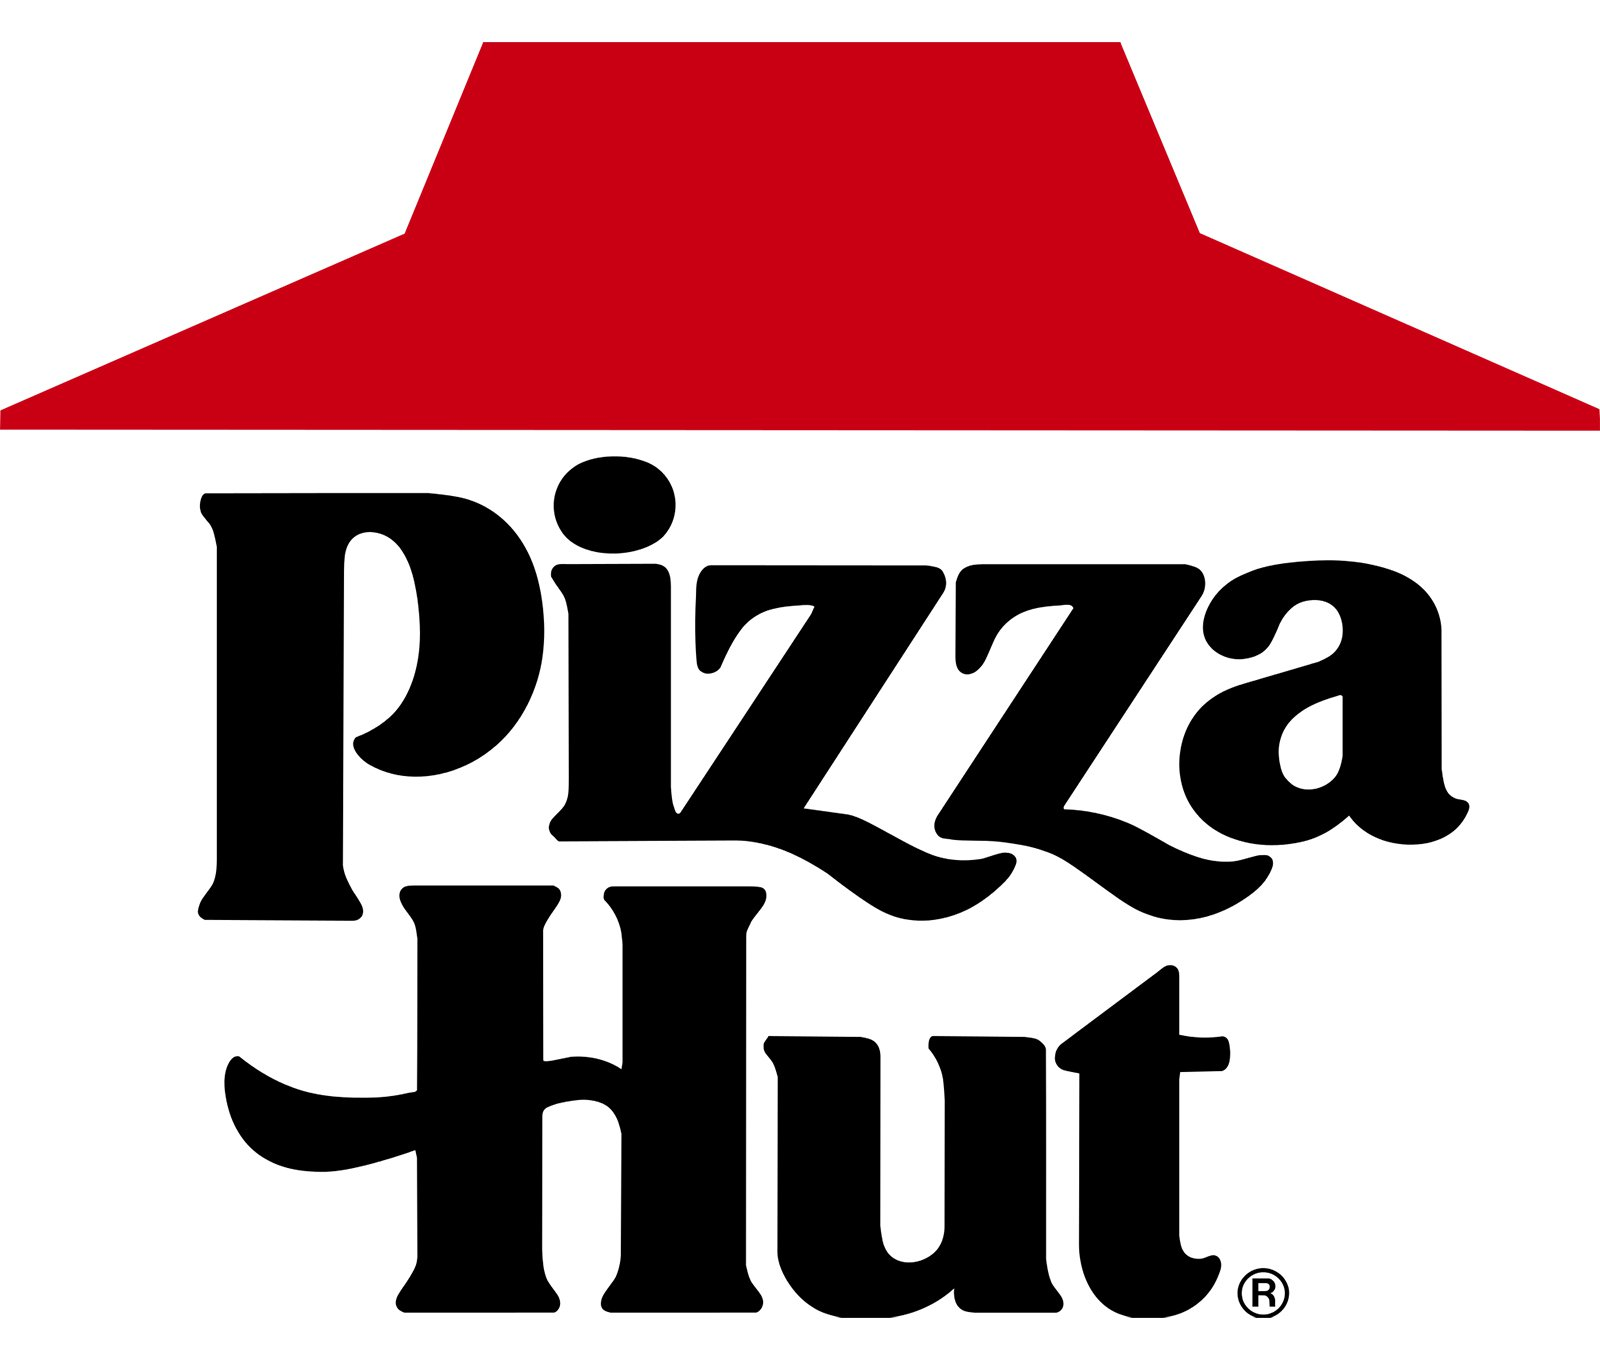 Pizza Hut Logo, Pizza Hut Symbol, Meaning, History and Evolution